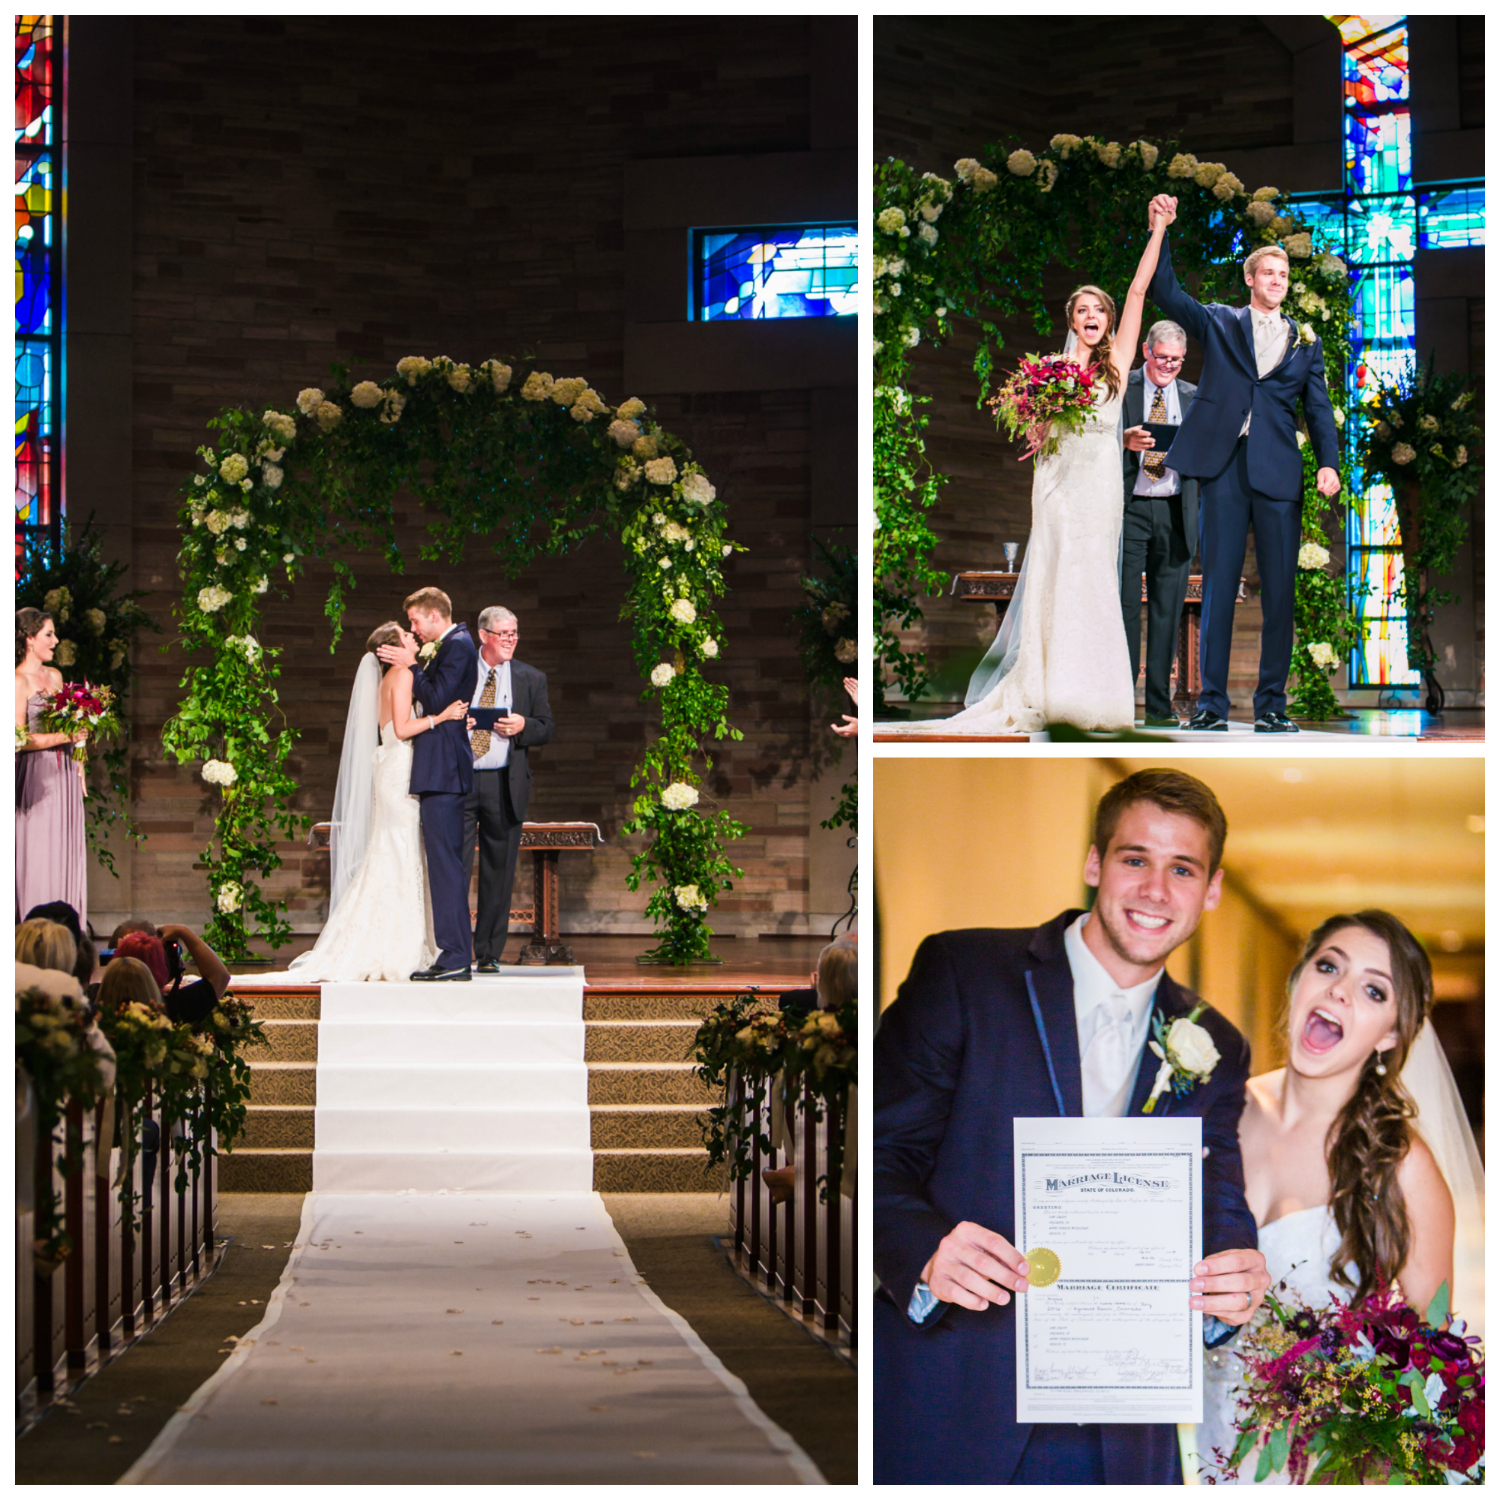 Cherry Hills Community Church wedding ceremony. Photos by JMGant Photography.